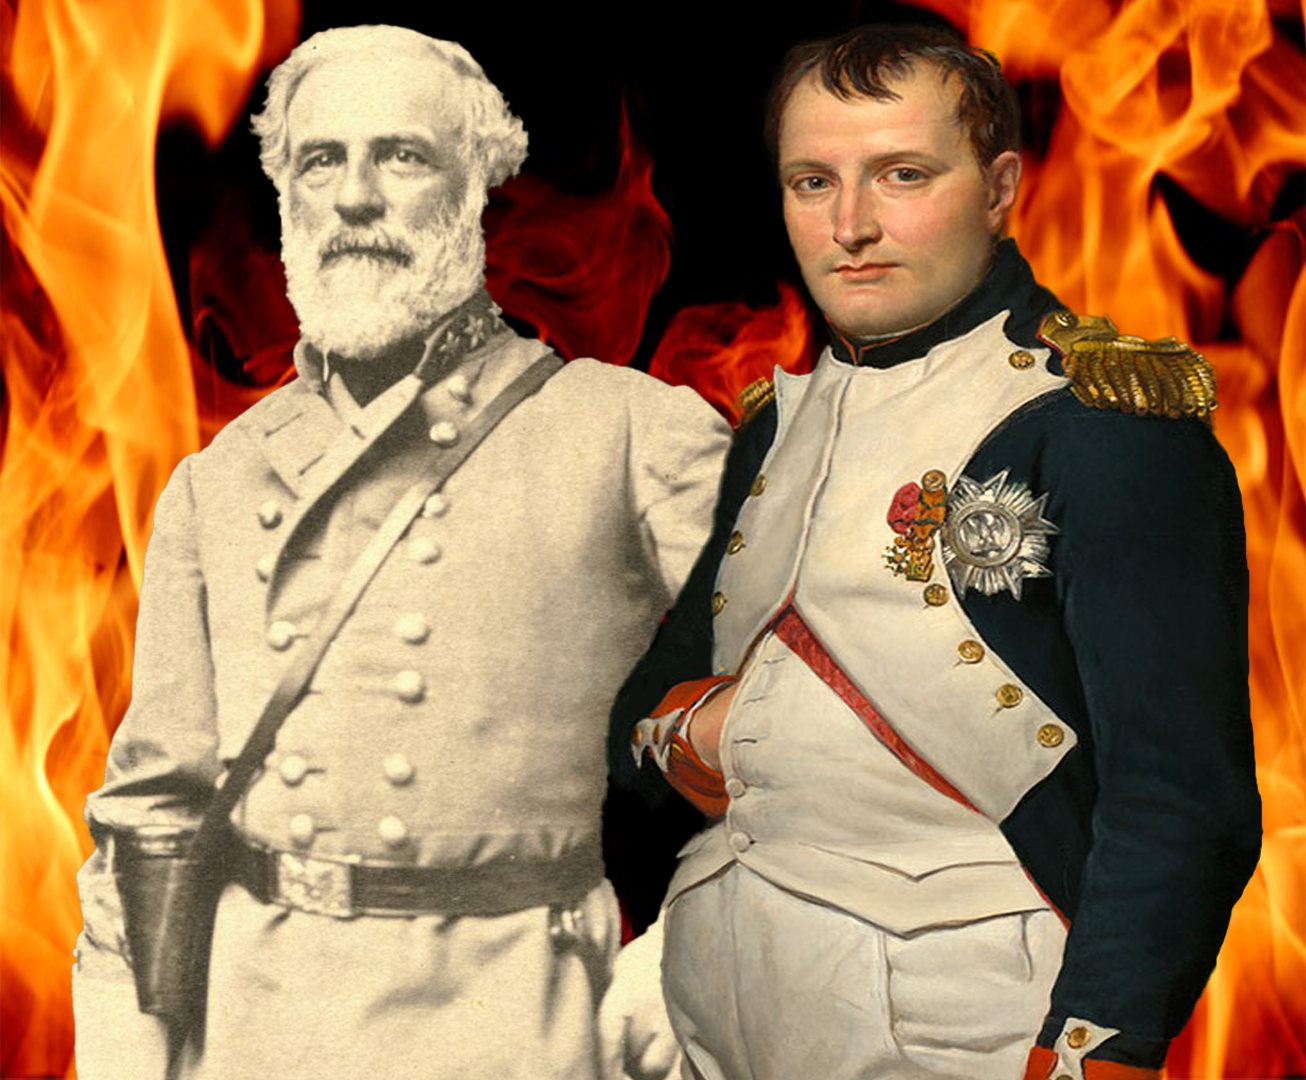 Napoleon, Robert E. Lee and the Cult of Past Personalities